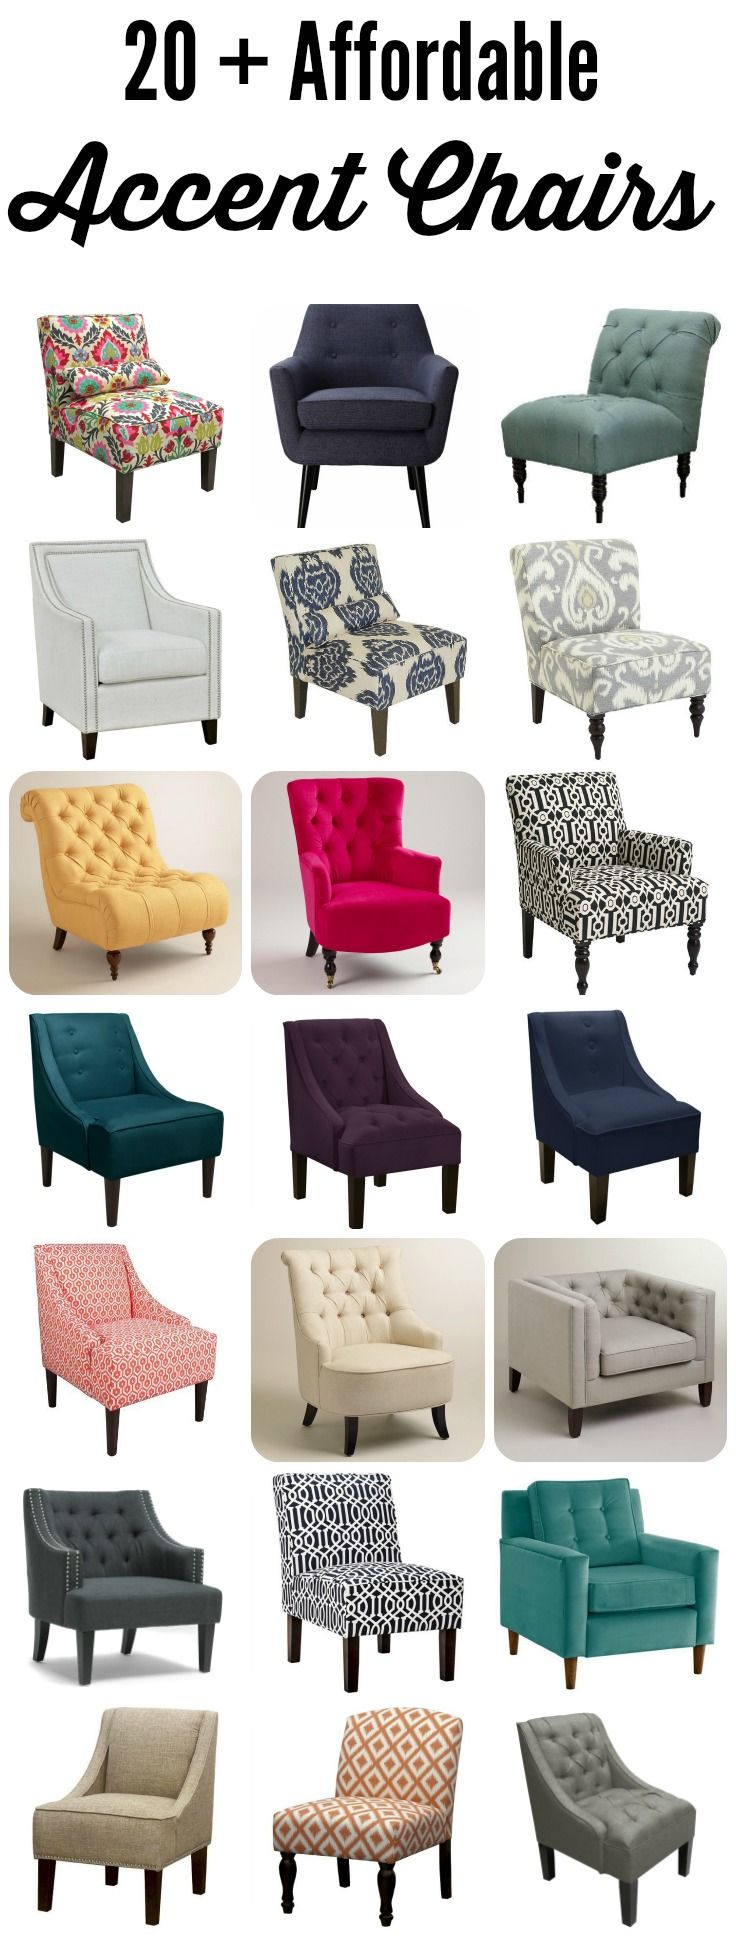 Best Sources for Affordable Accent Chairs | Blogger Home Projects We ...